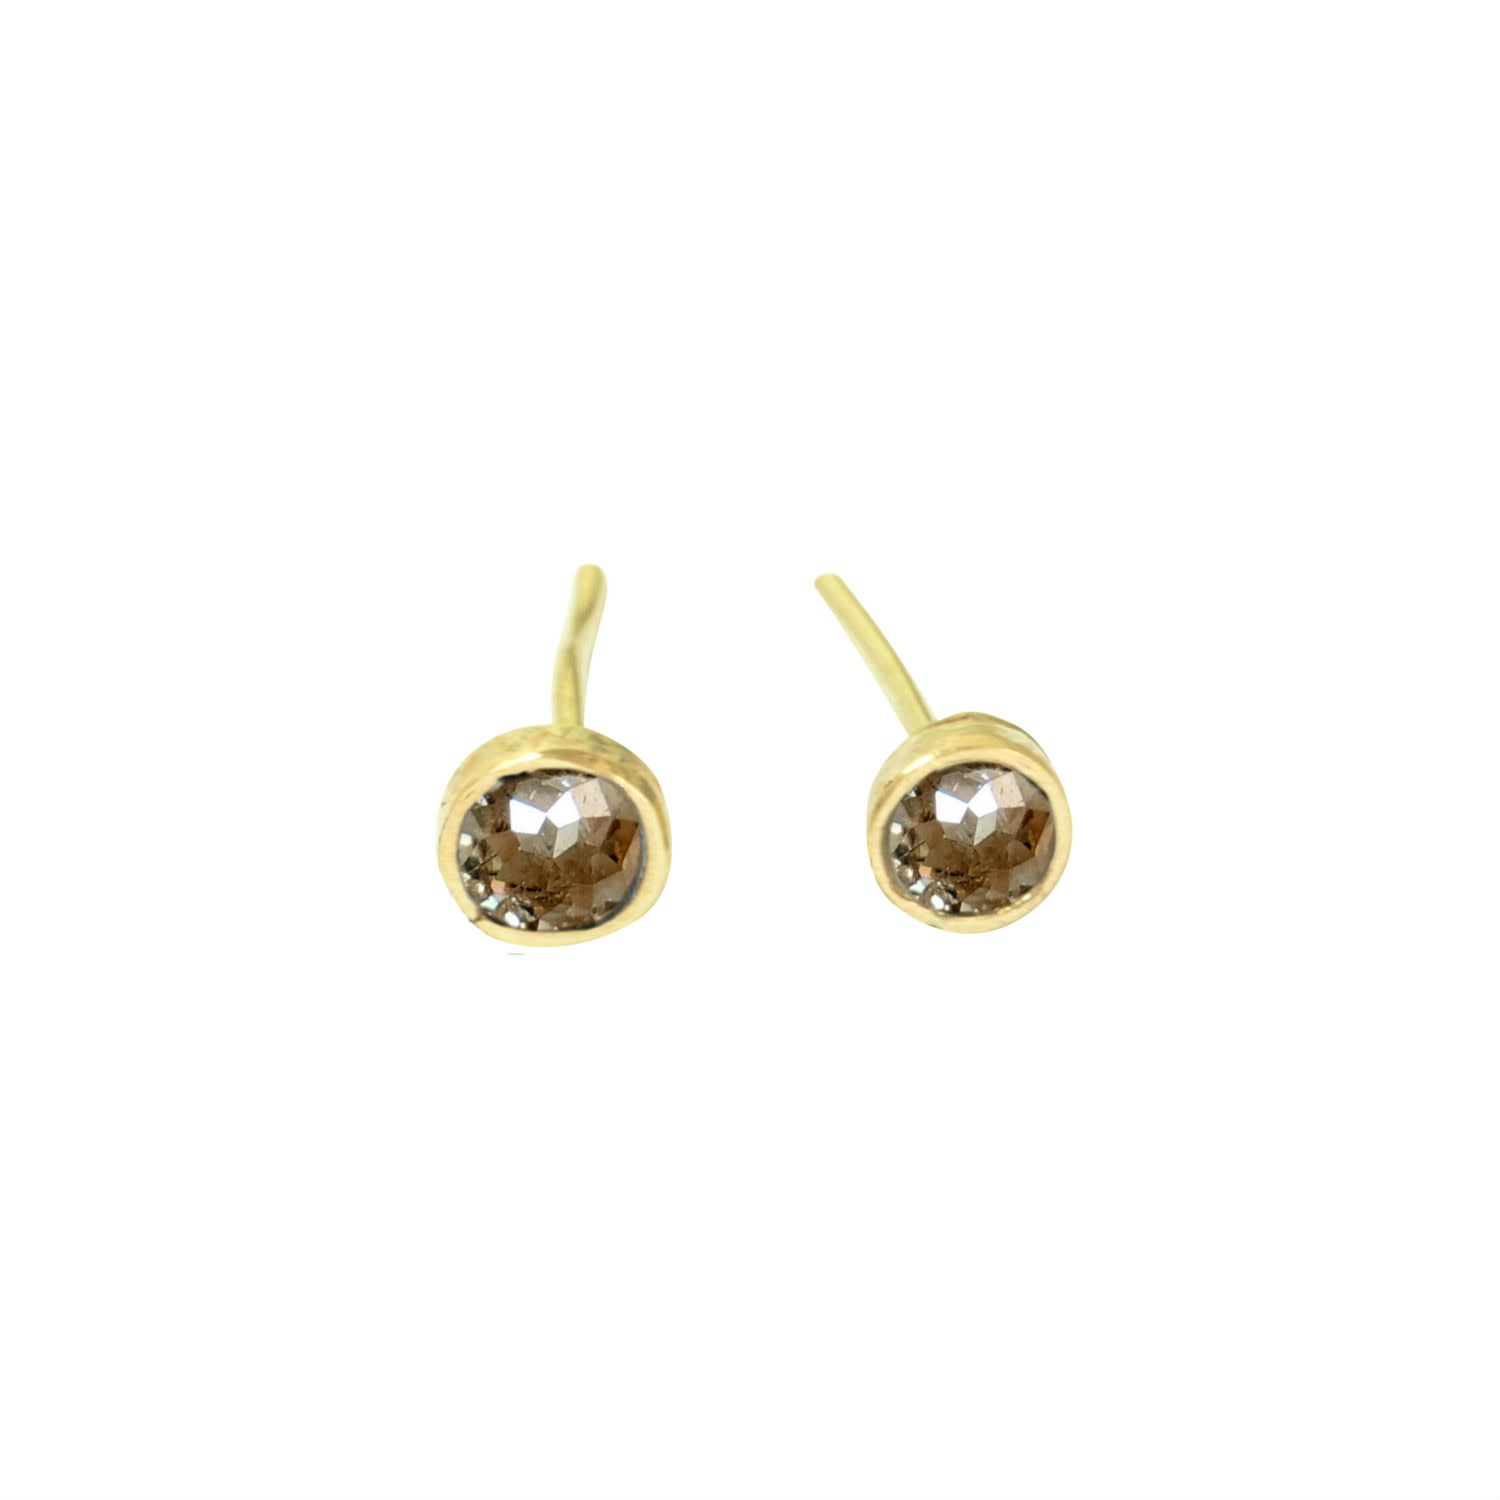 Lily Flo Jewellery - Champagne Rose Cut Diamonds On Solid Gold Stud Earrings